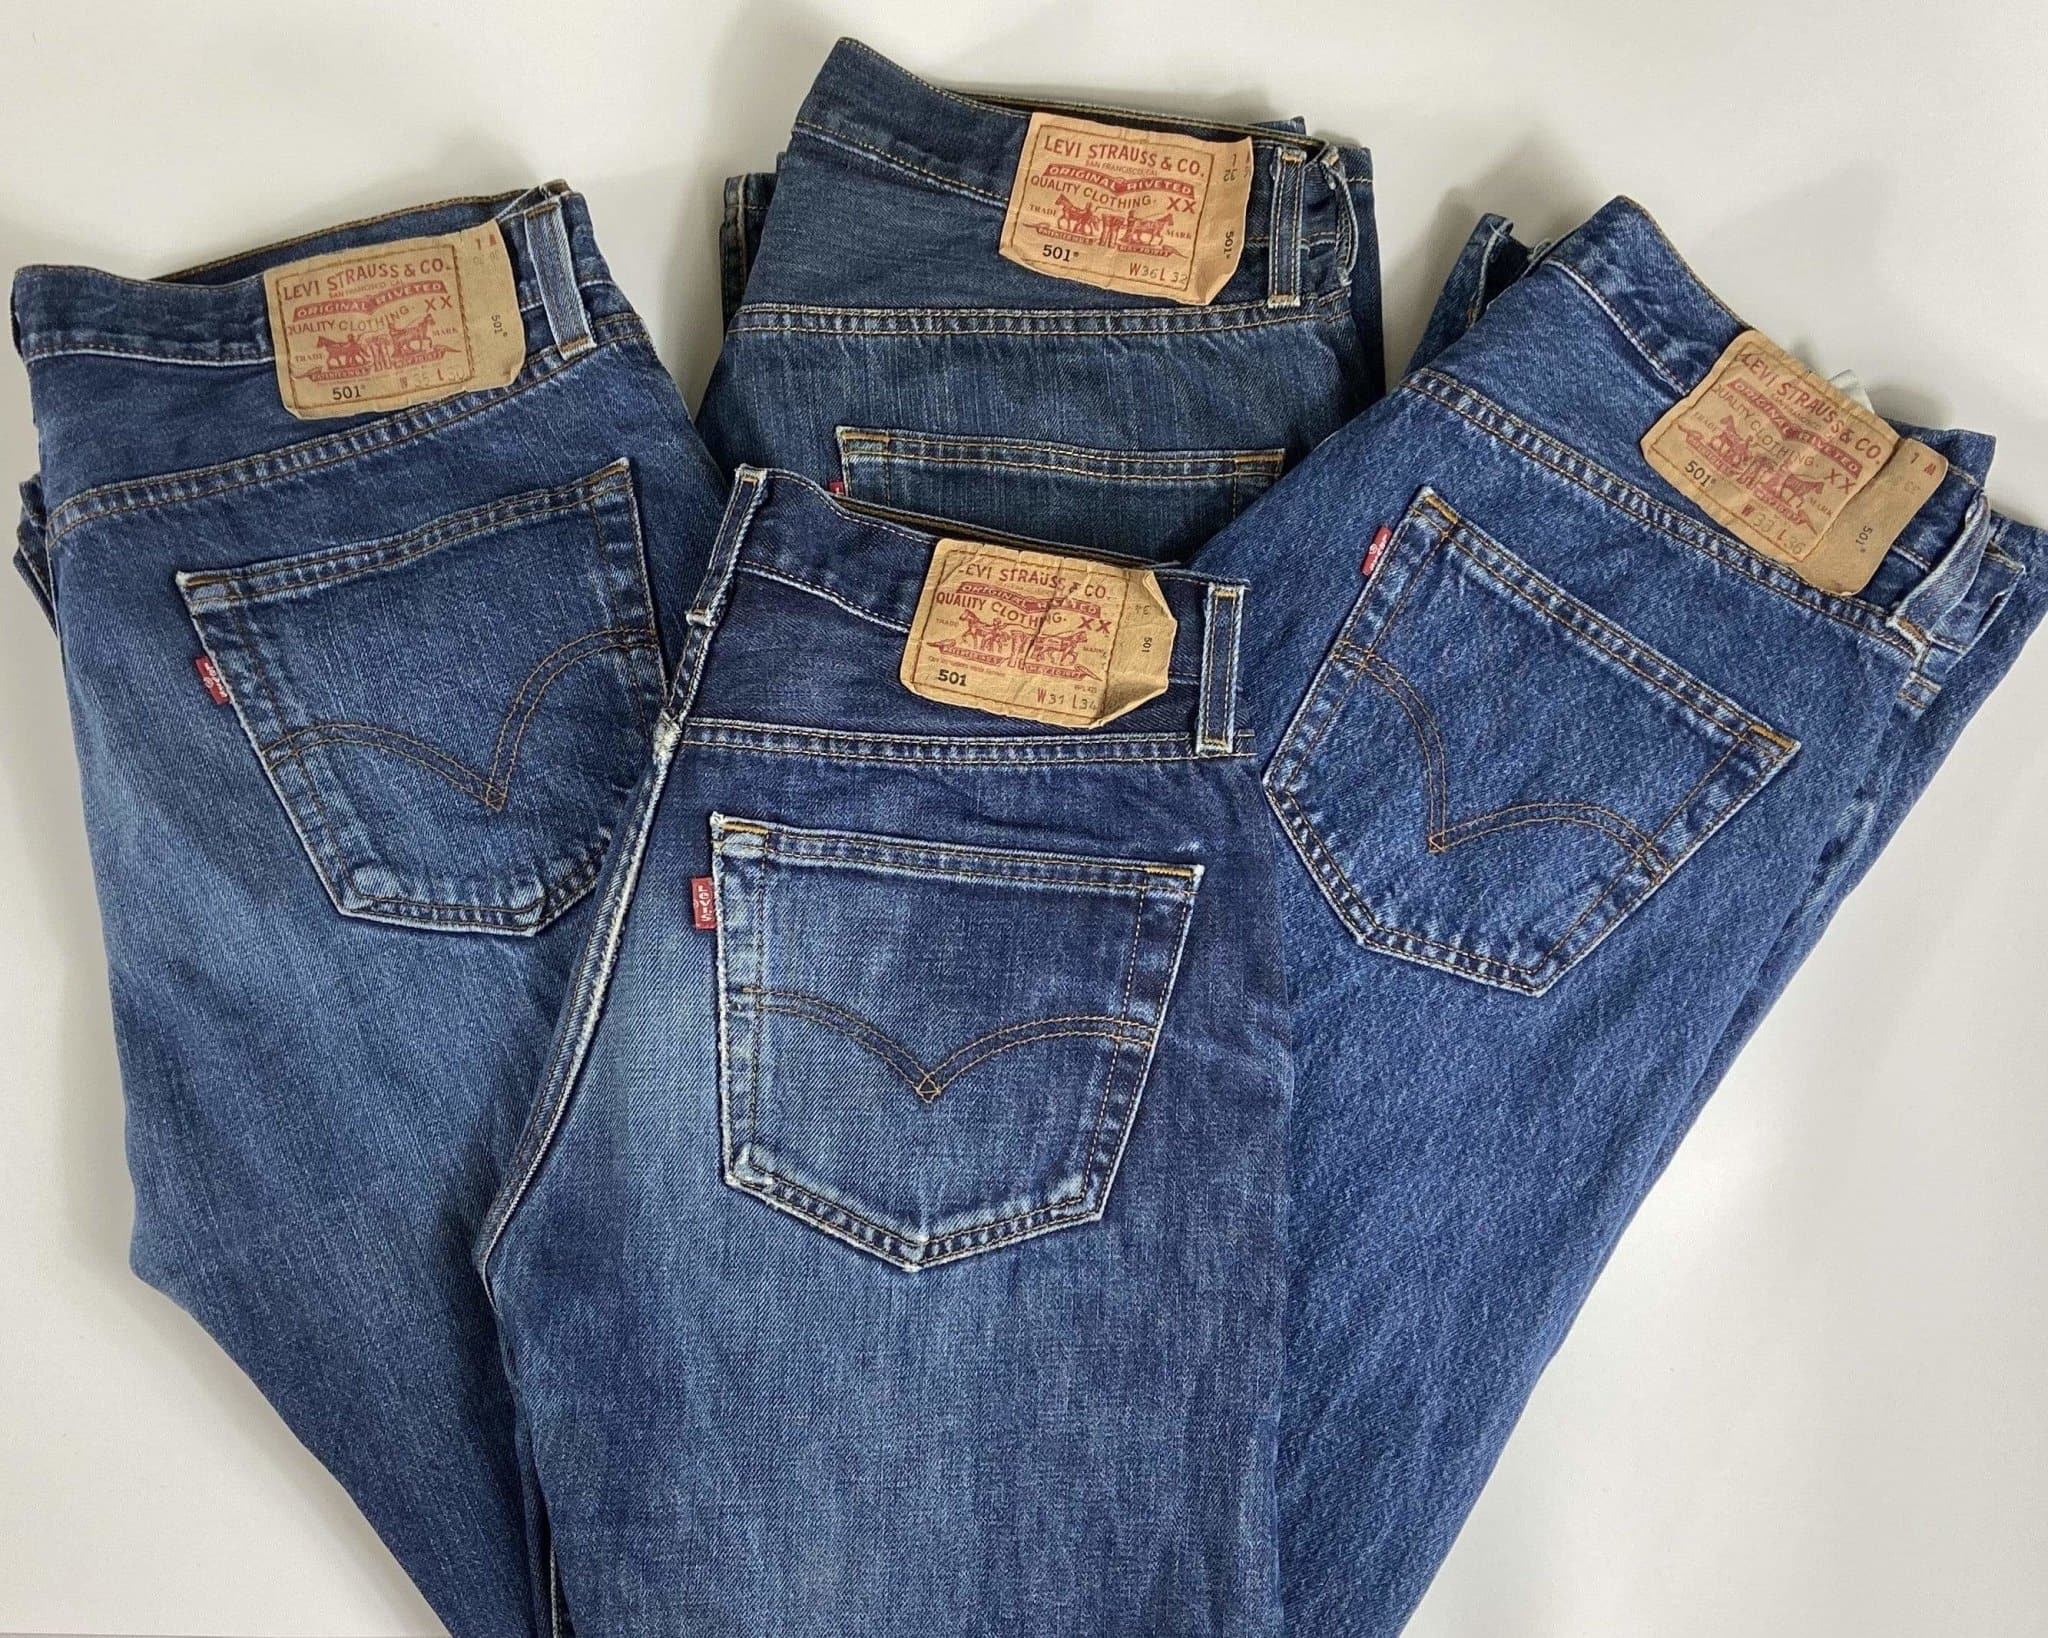 Vintage Levi's Classic 501 Jeans W34 L34 (C10) - Discounted Deals UK